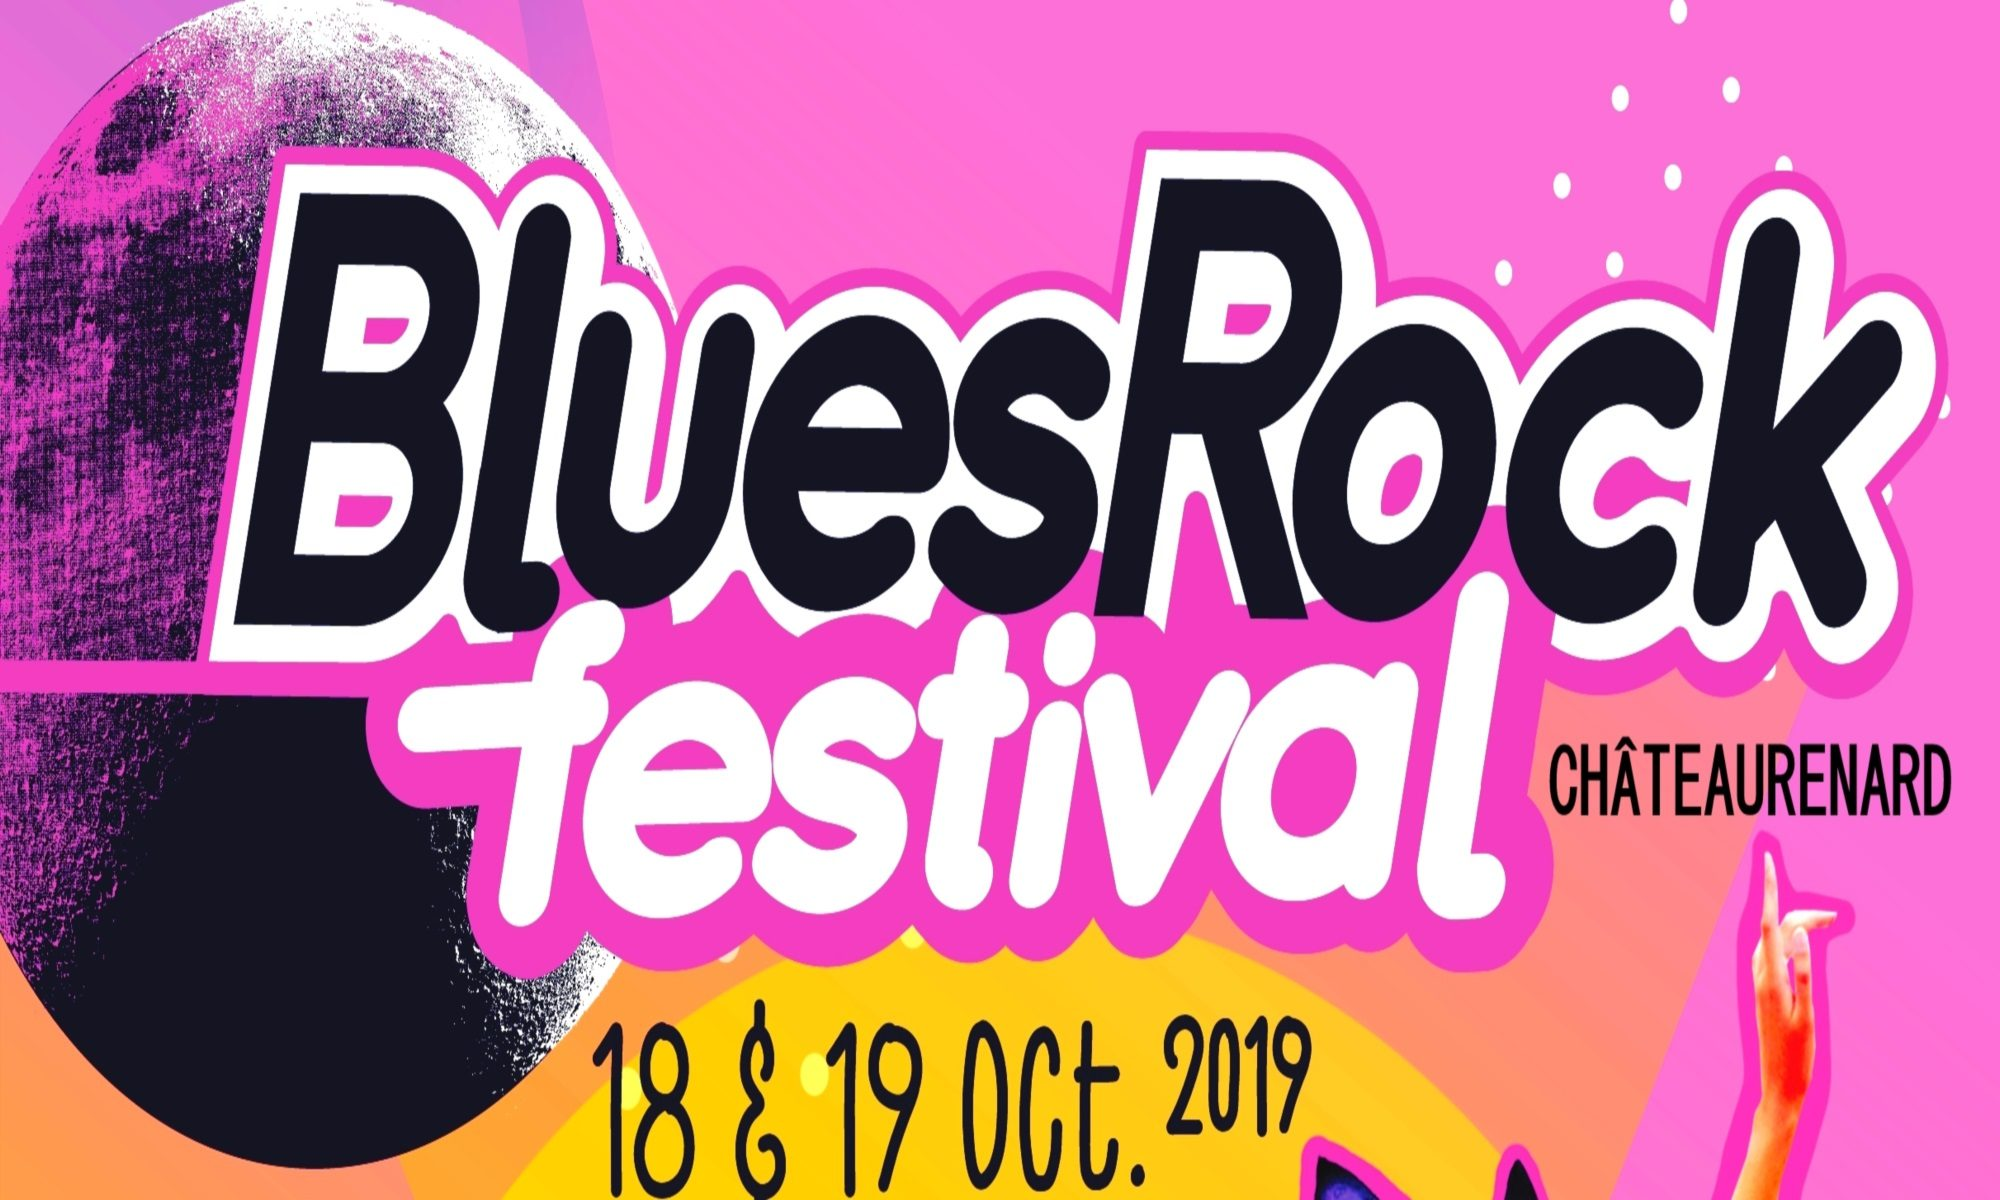 festival blues rock à Châteaurenard